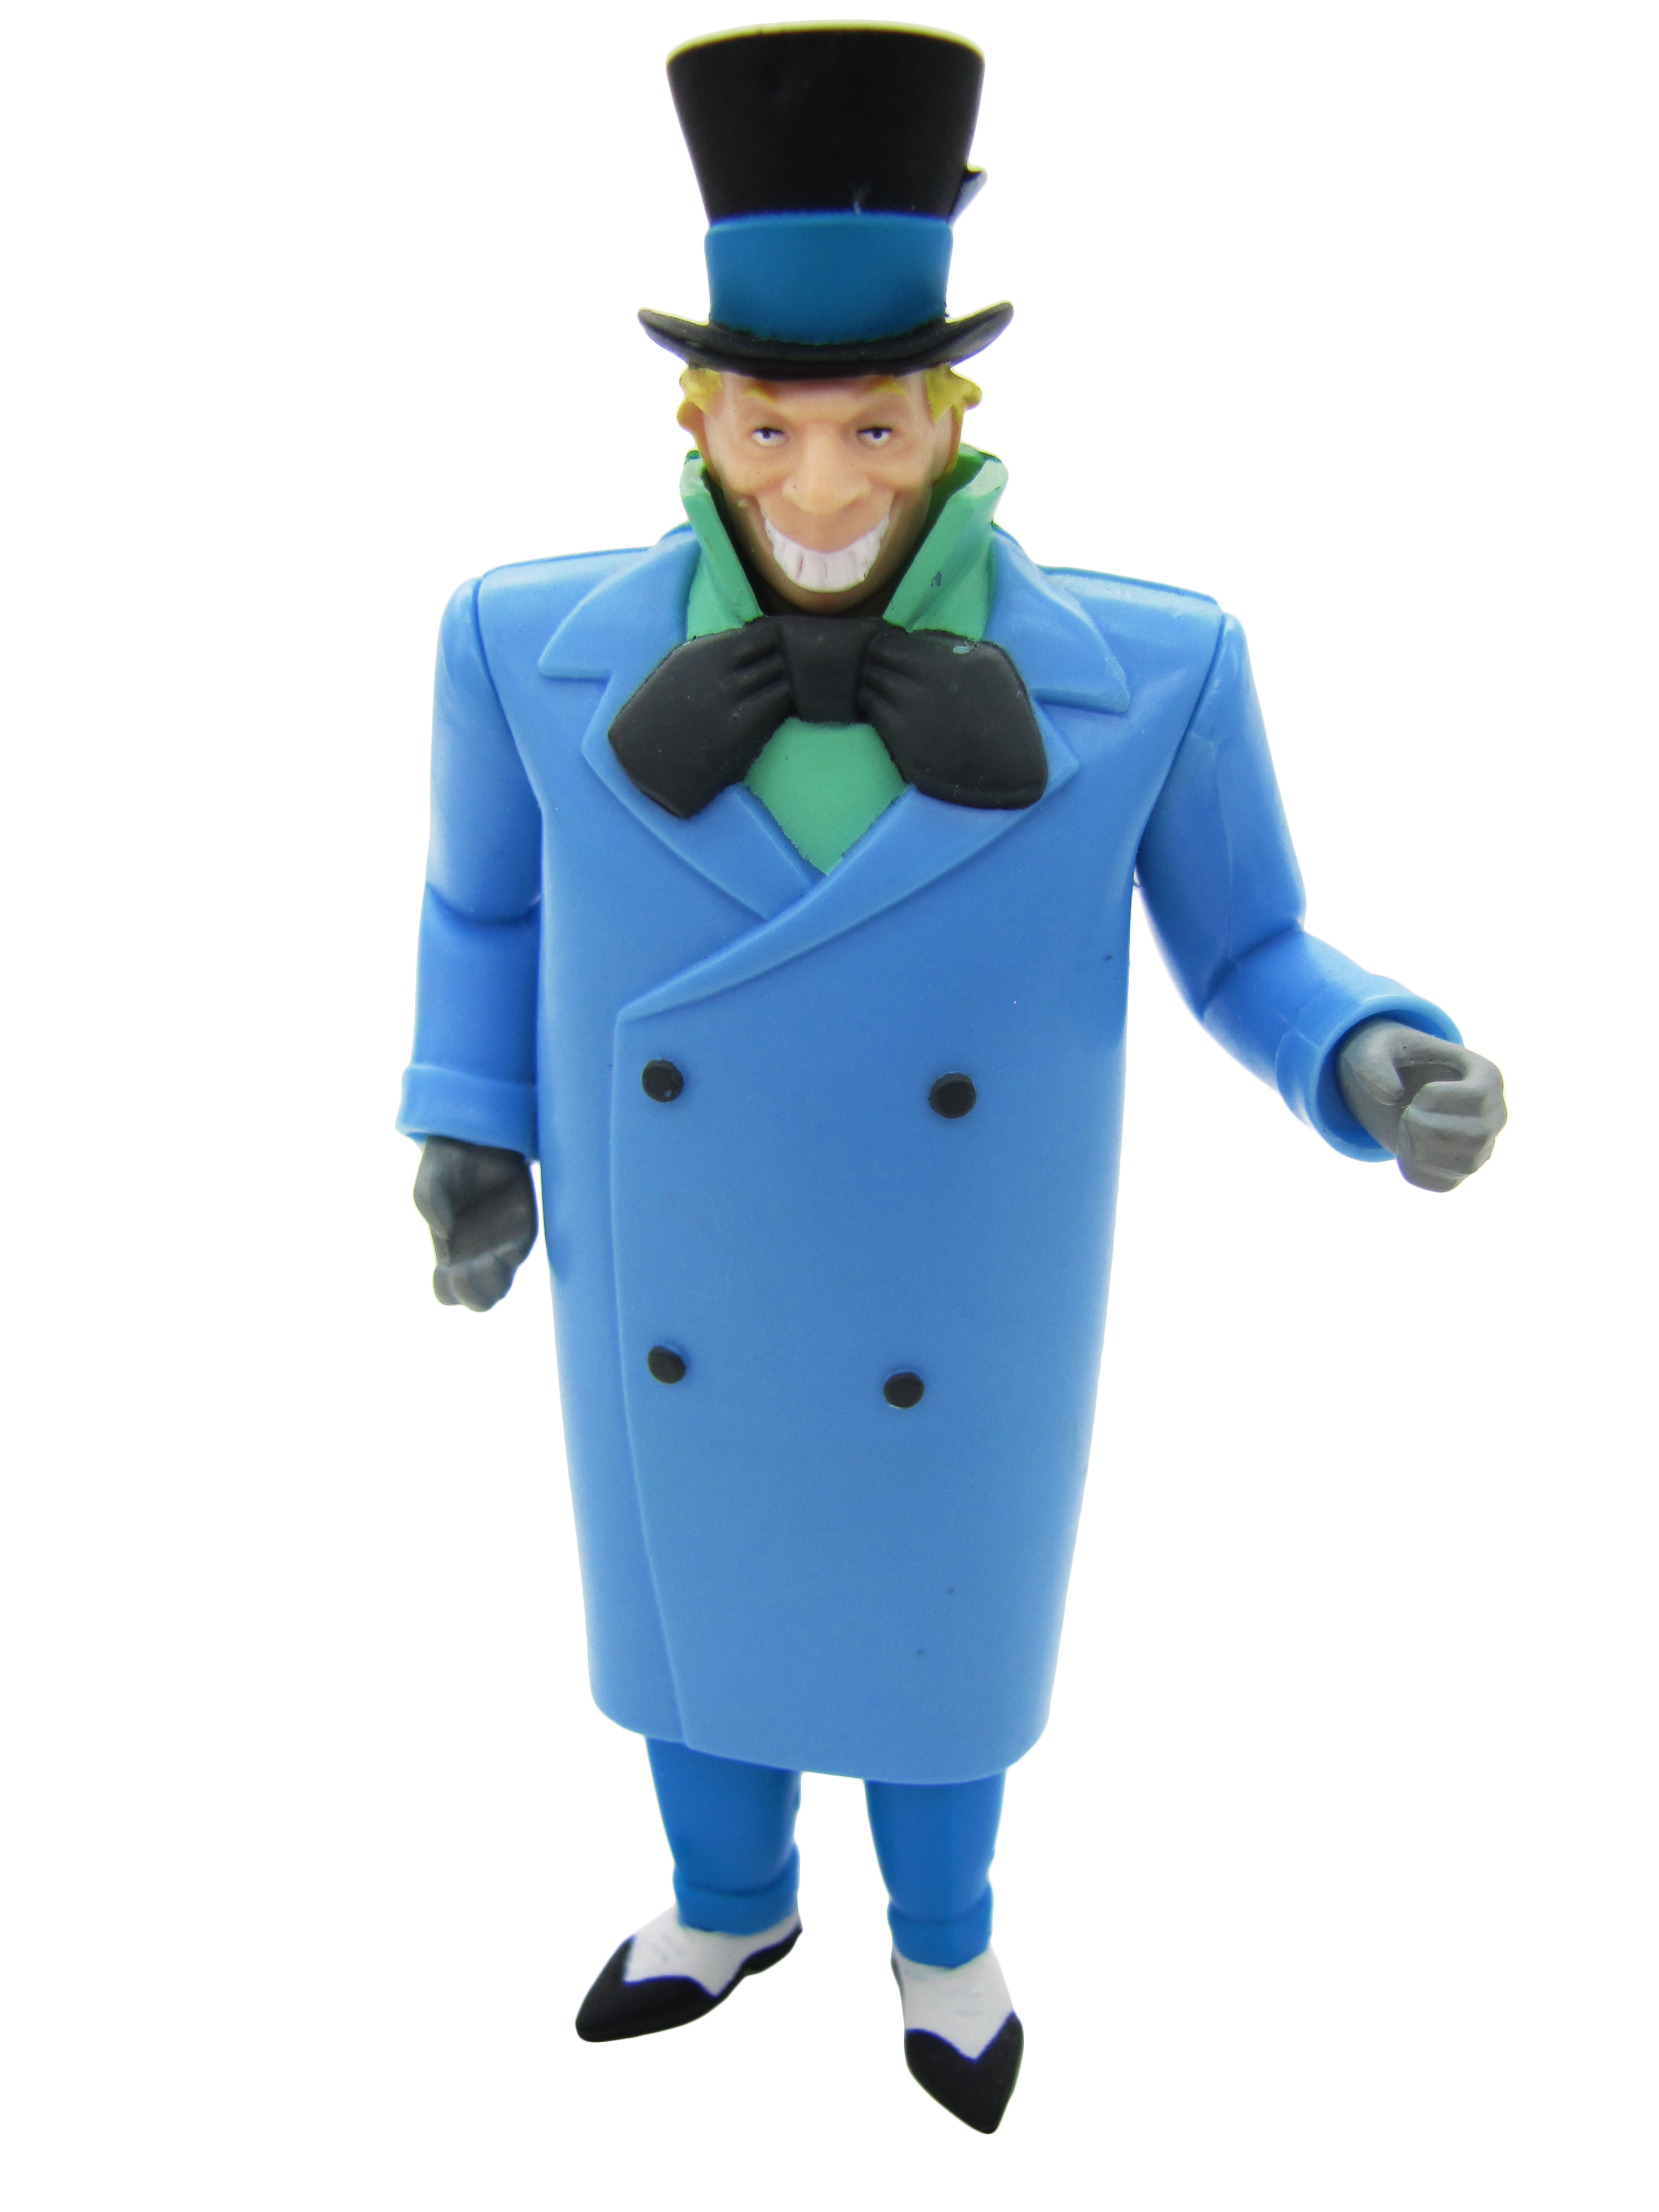 1997 The New Batman Adventures THE MAD HATTER Mint